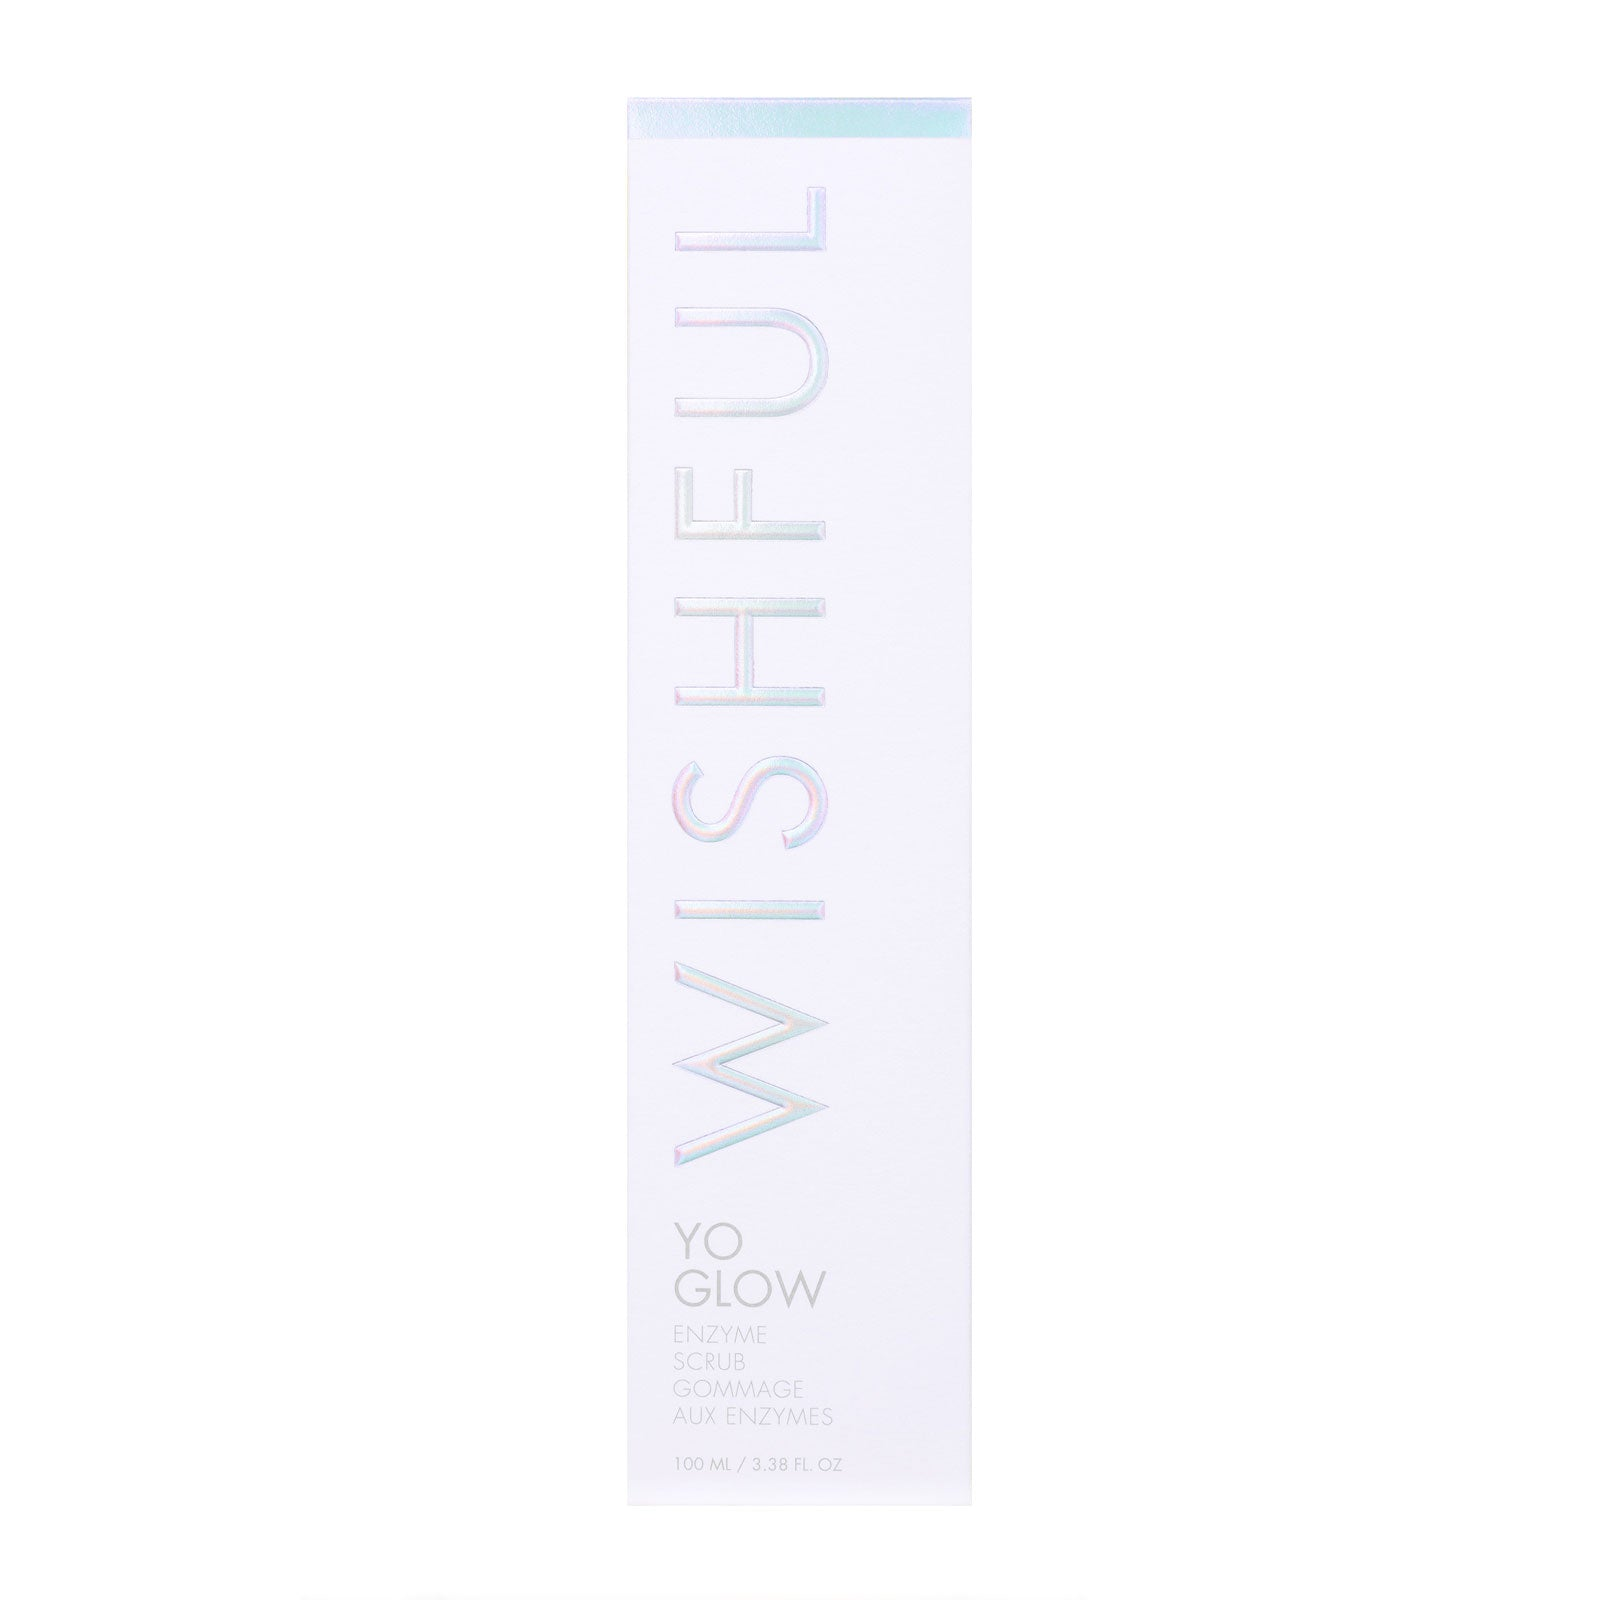 Wishful Yo Glow Enzyme Scrub 100ml